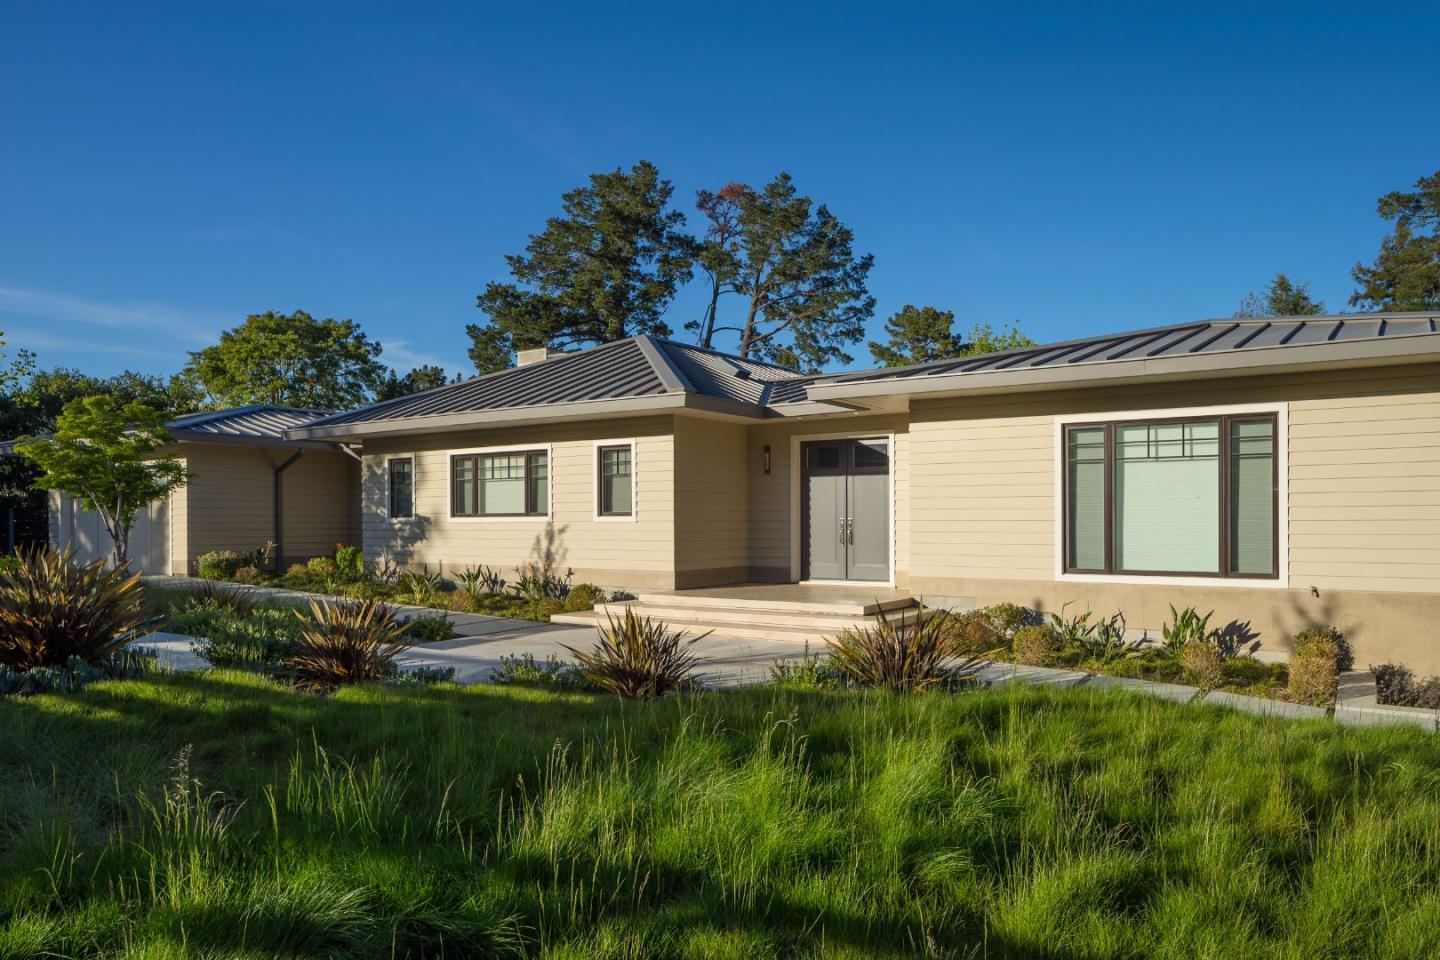 Additional photo for property listing at 35 Willard Lane  Hillsborough, California 94010 United States